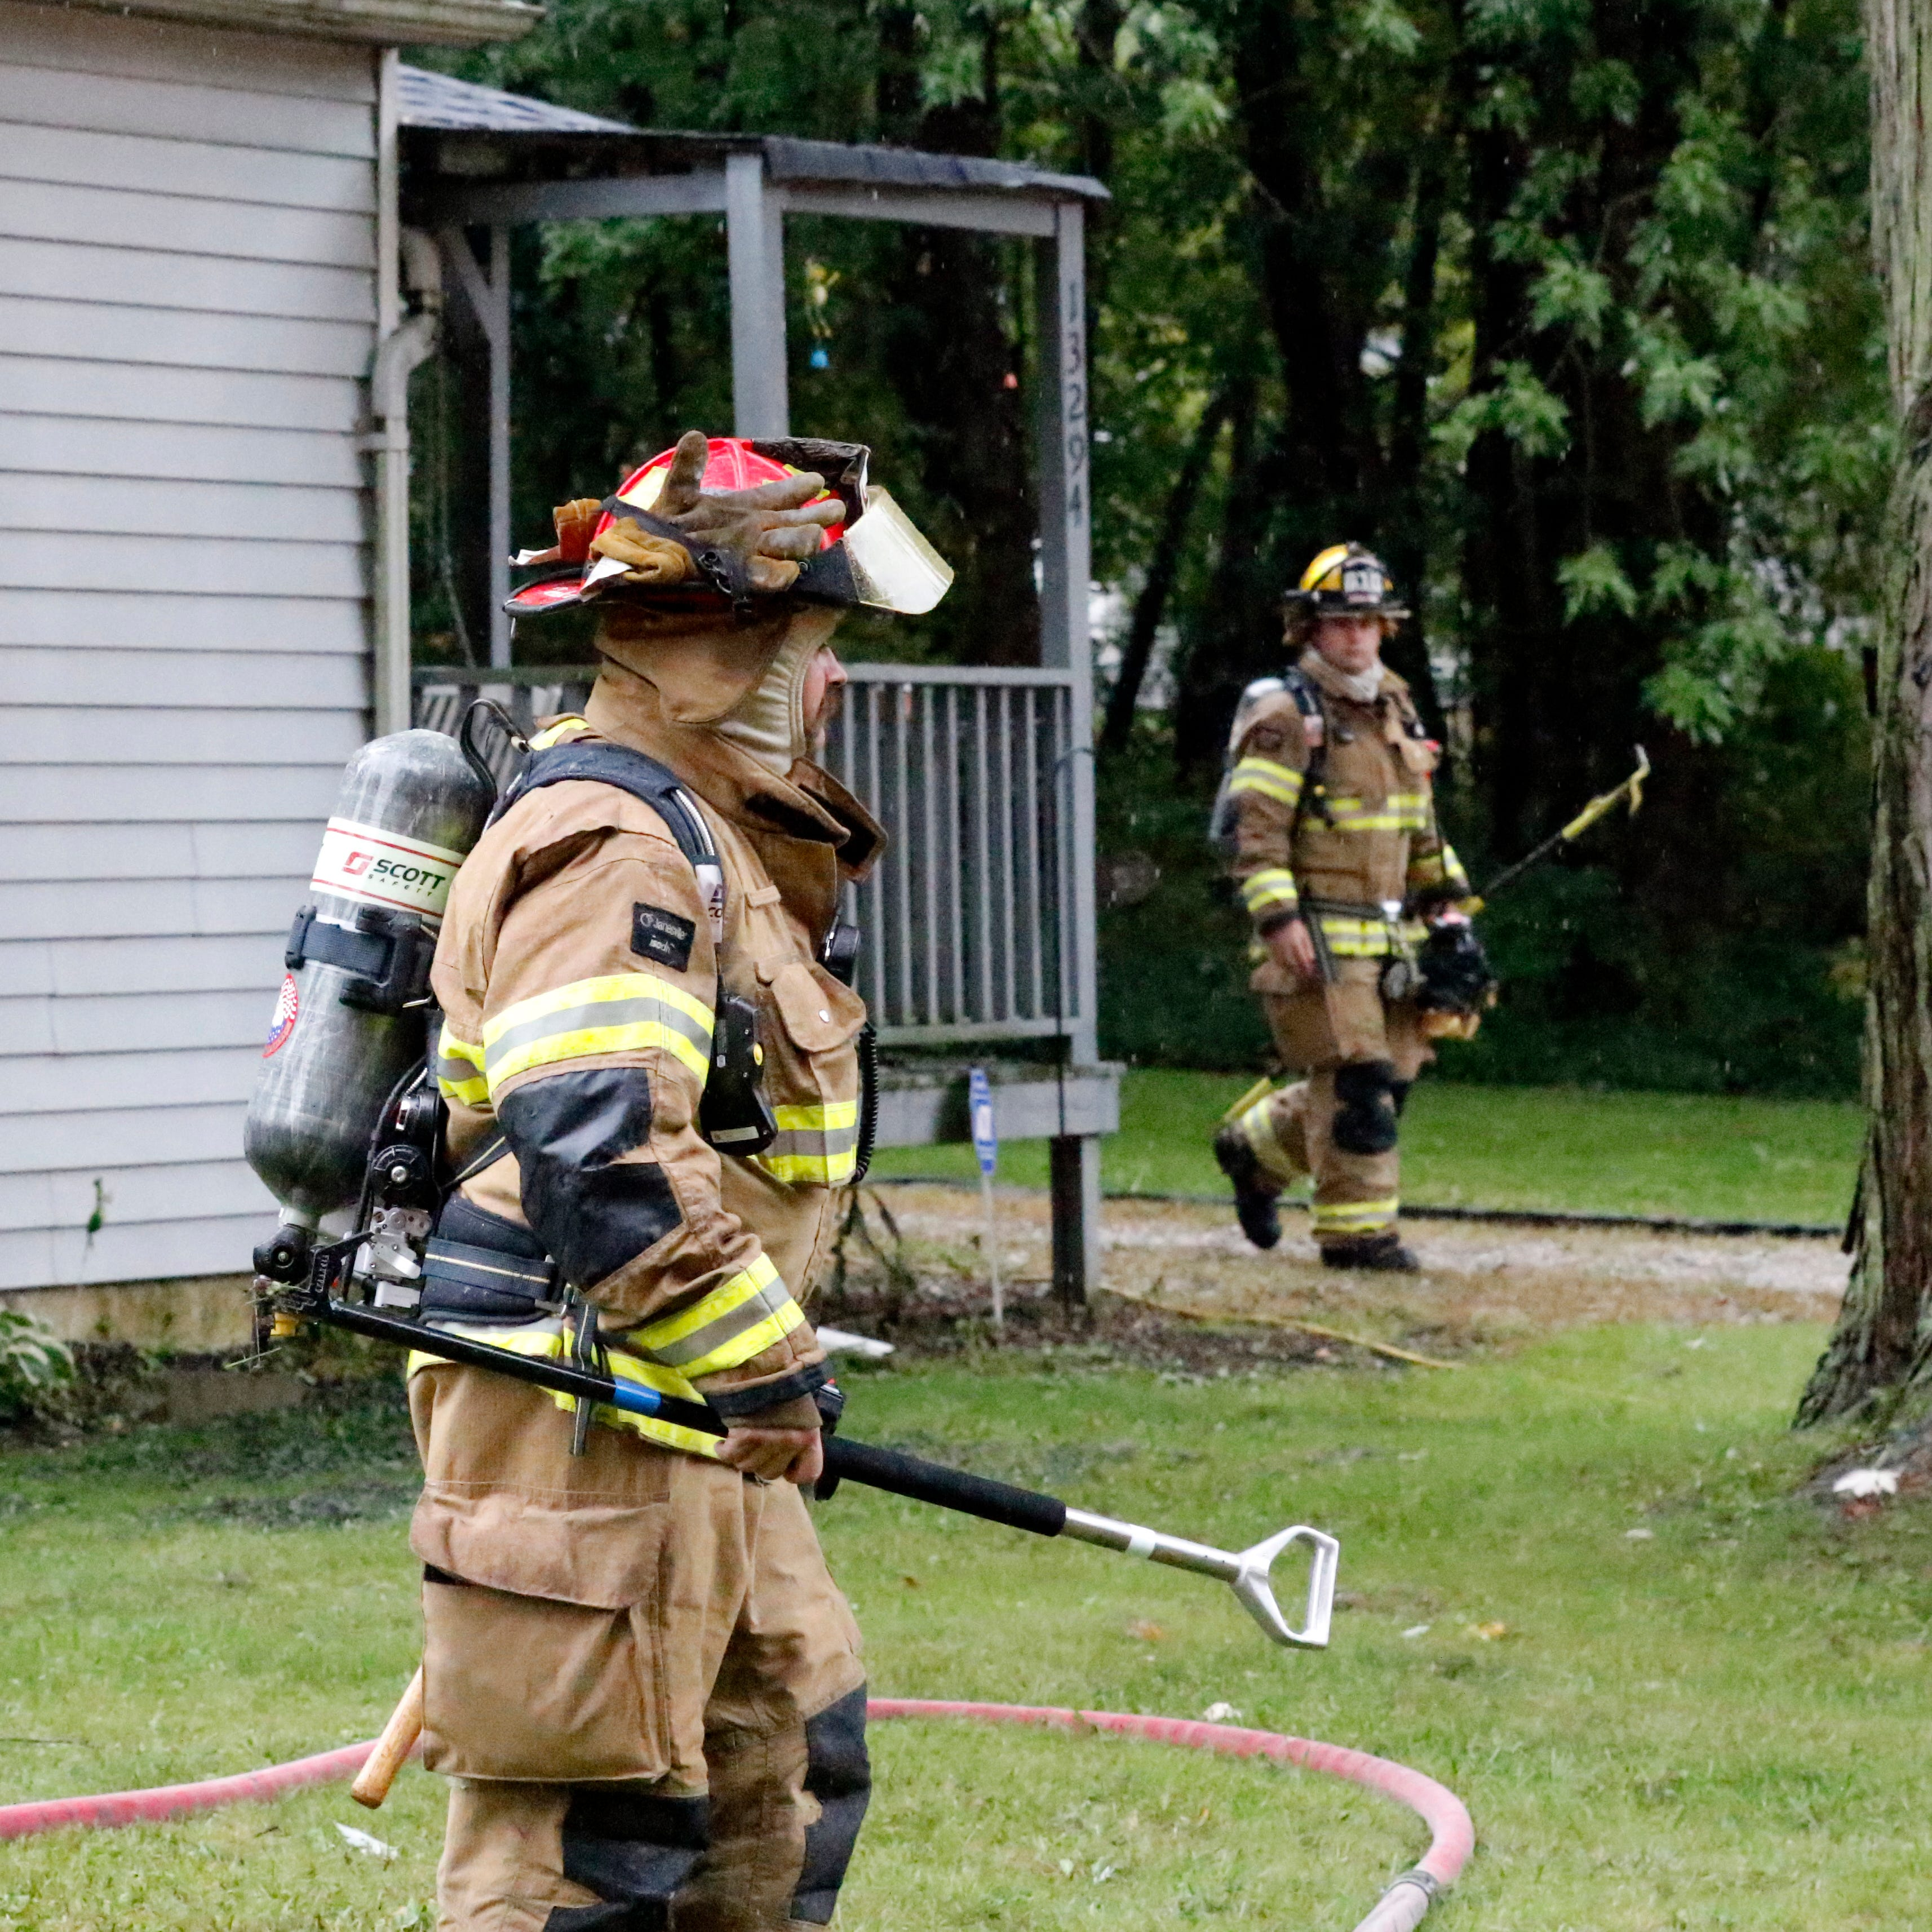 No one injured after fire damages Fairfield Beach home near Millersport